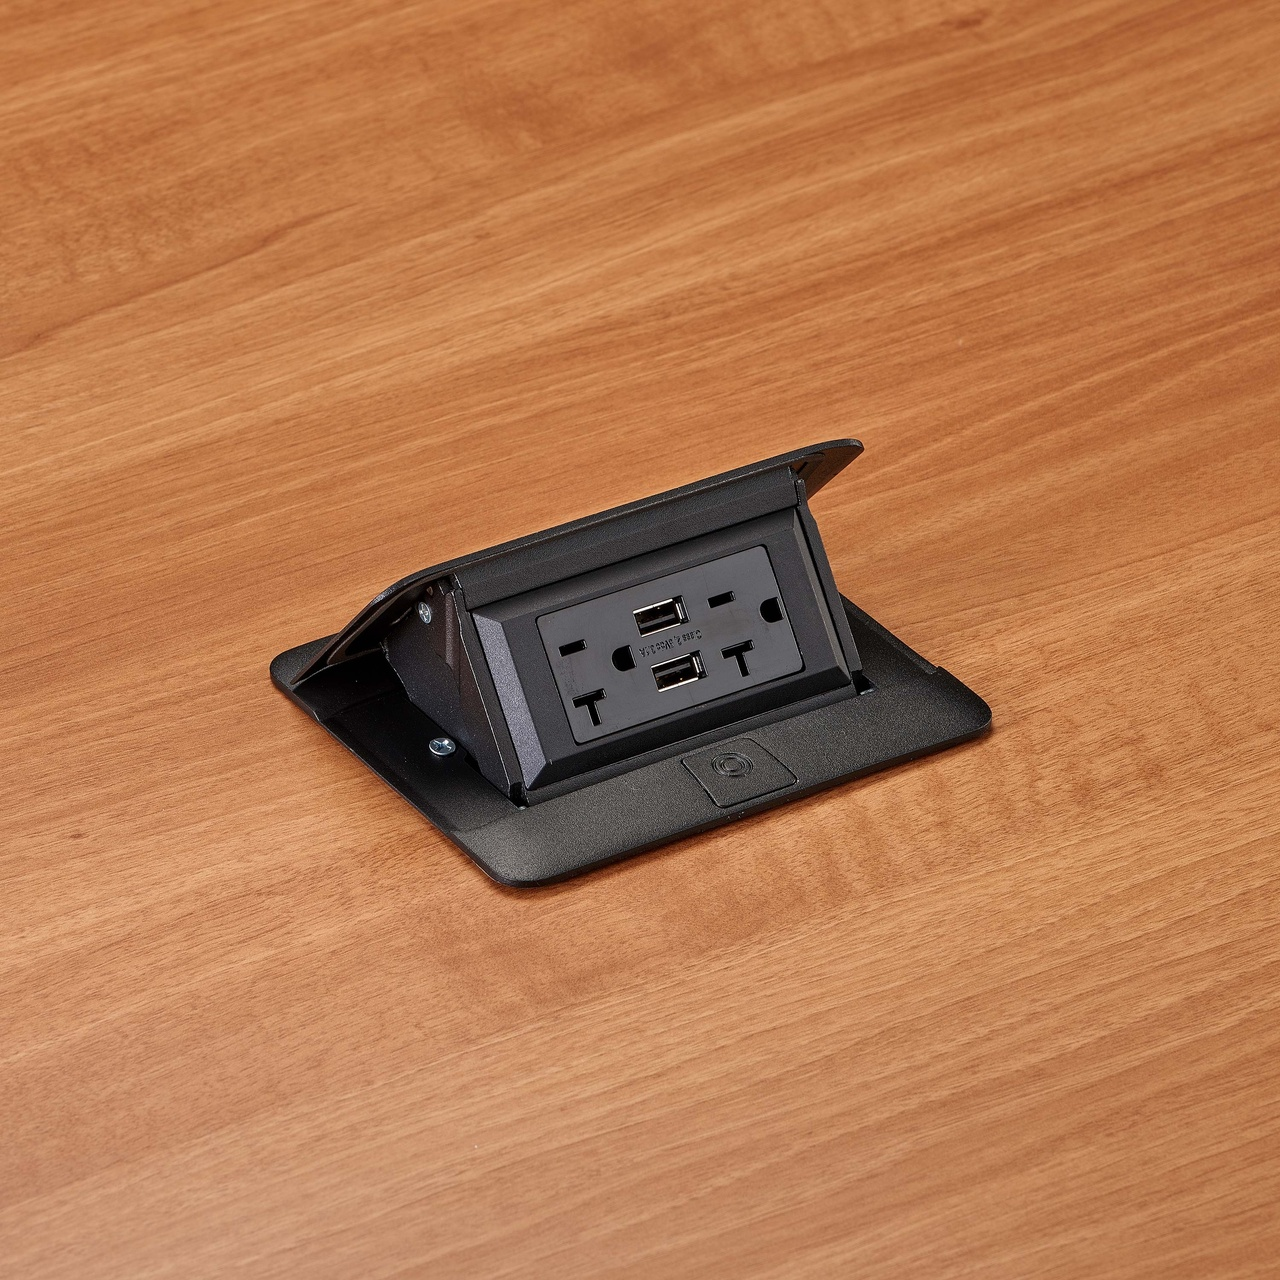 deQuorum Flip-Up Table Box 1-Gang 20A recep 3.1A USB, black finish-side view, DQFP20UBK